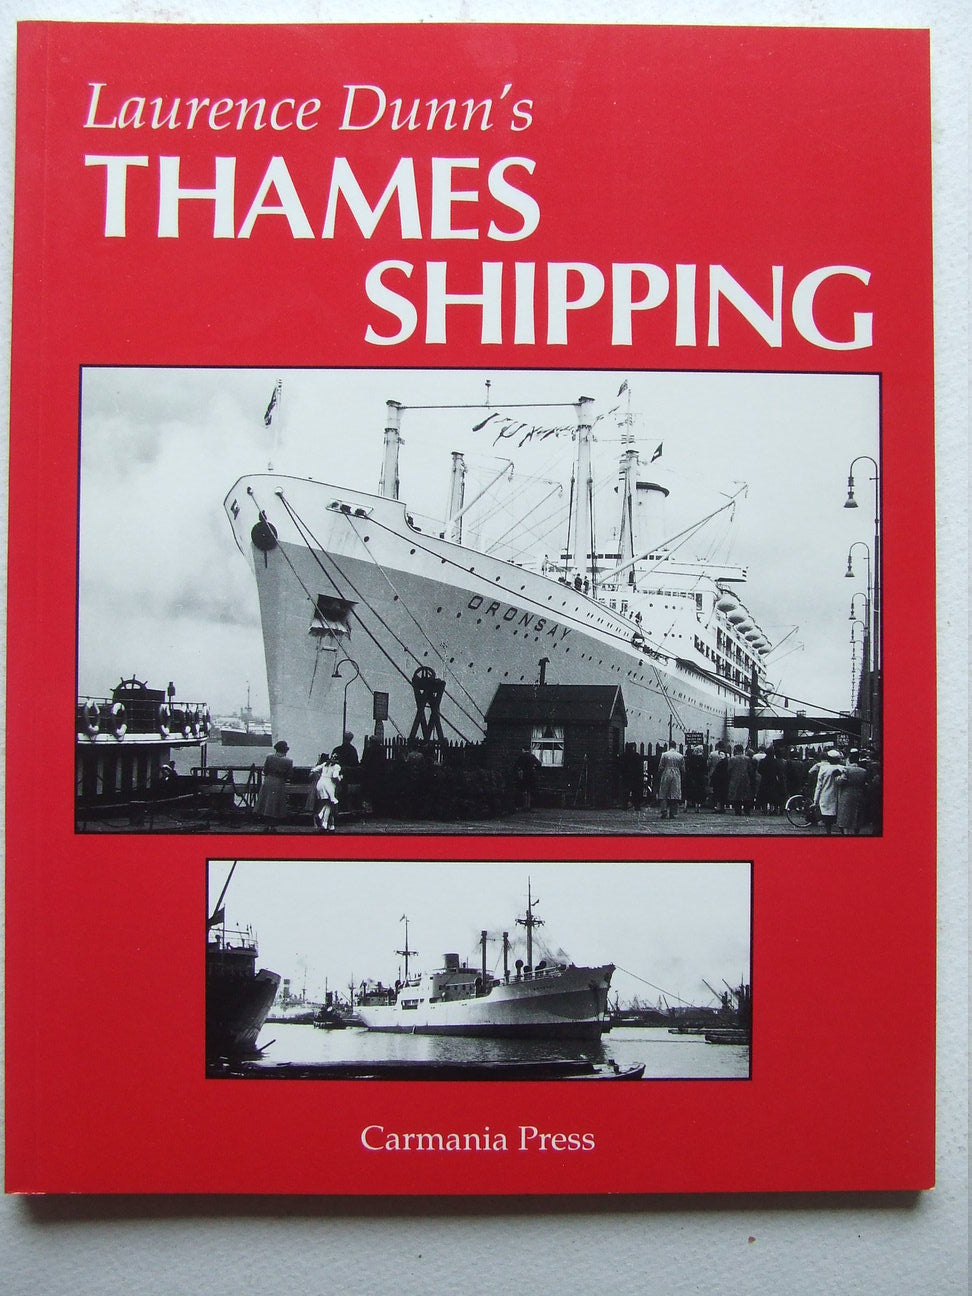 Laurence Dunn's Thames Shipping